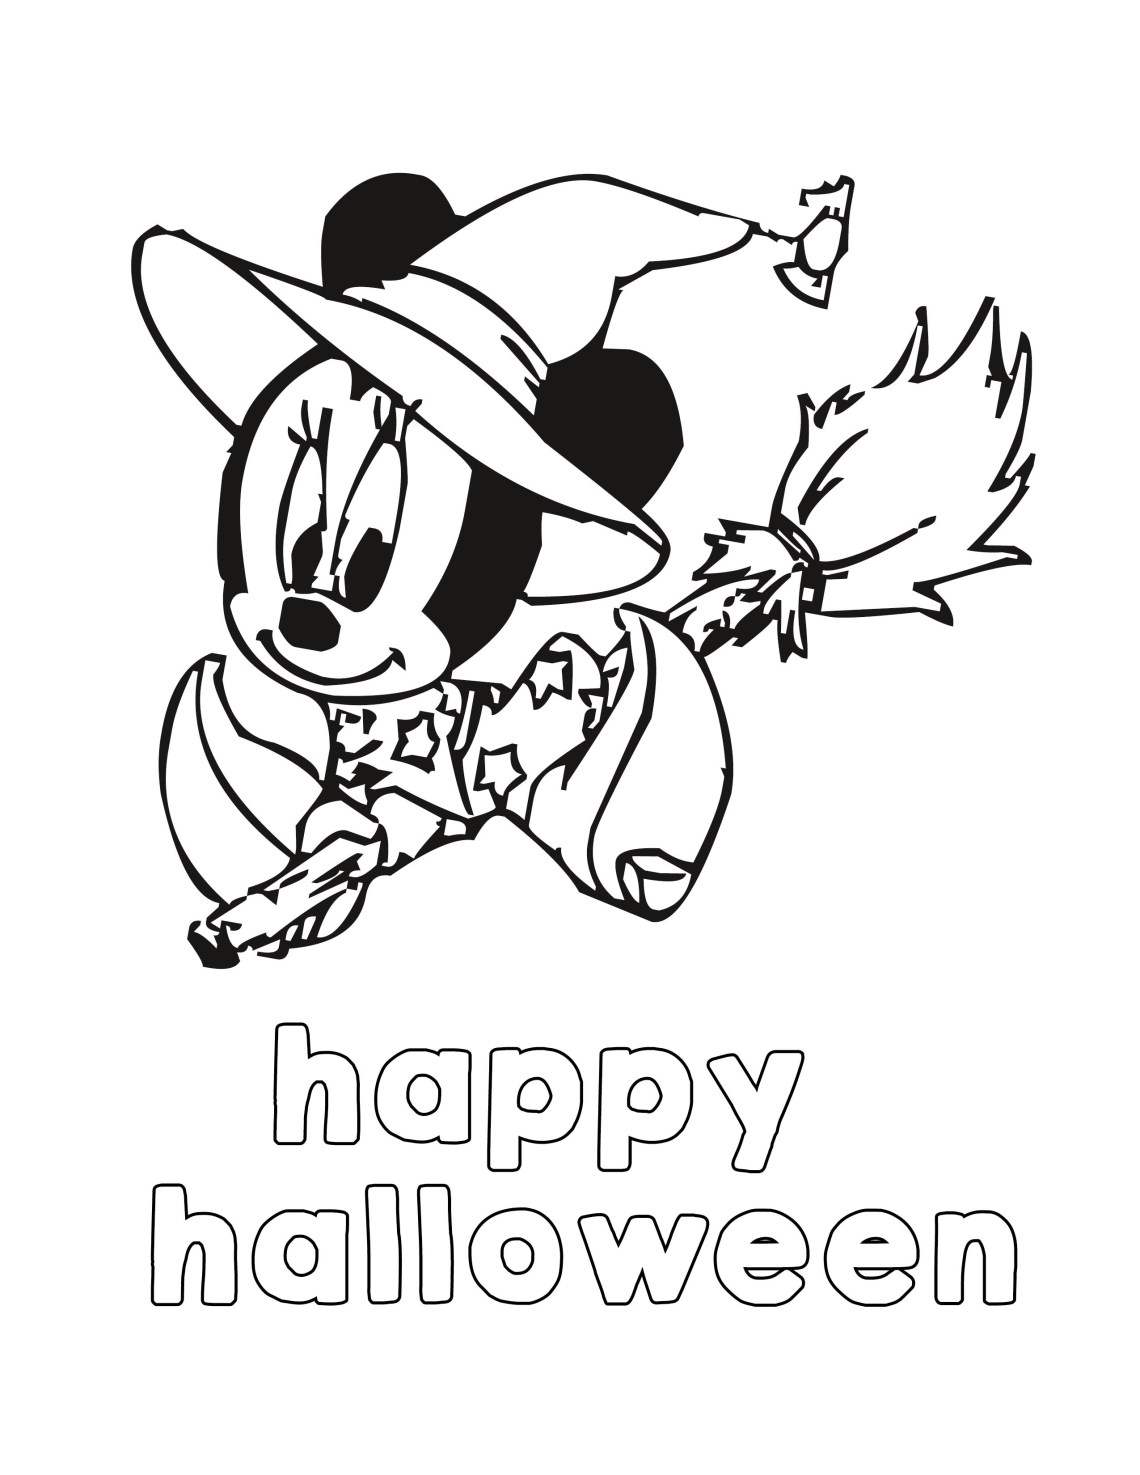 Halloween Coloring Pages -Disney Halloween- free printable coloring pages for kids - Misty Nelson @frostedevents